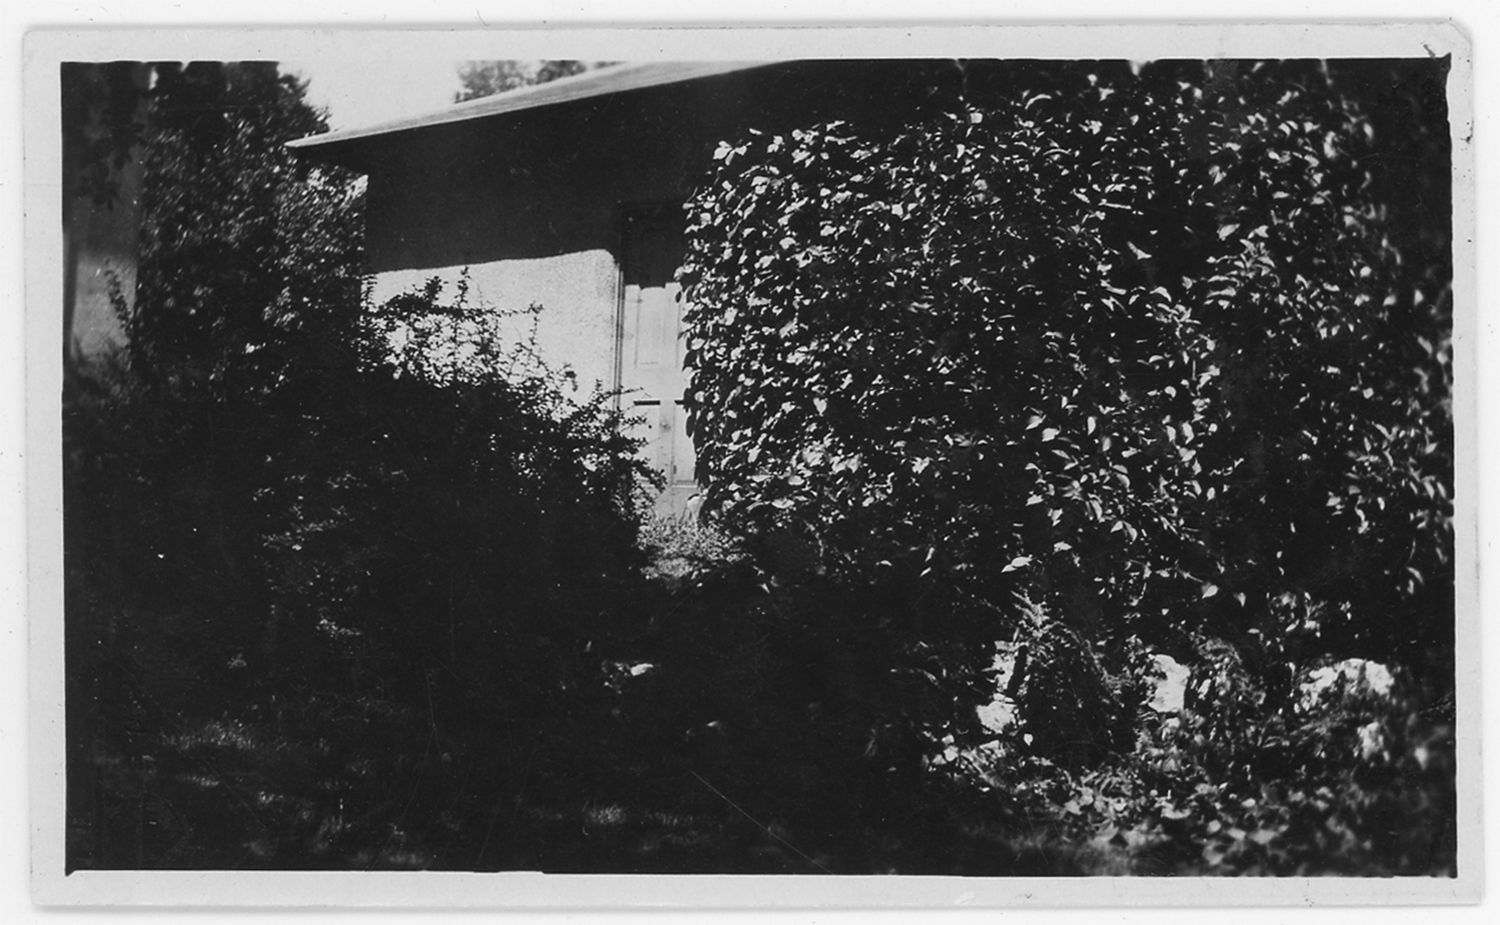 Virginia creeper on the garage of the Delbert Meier house in 1923